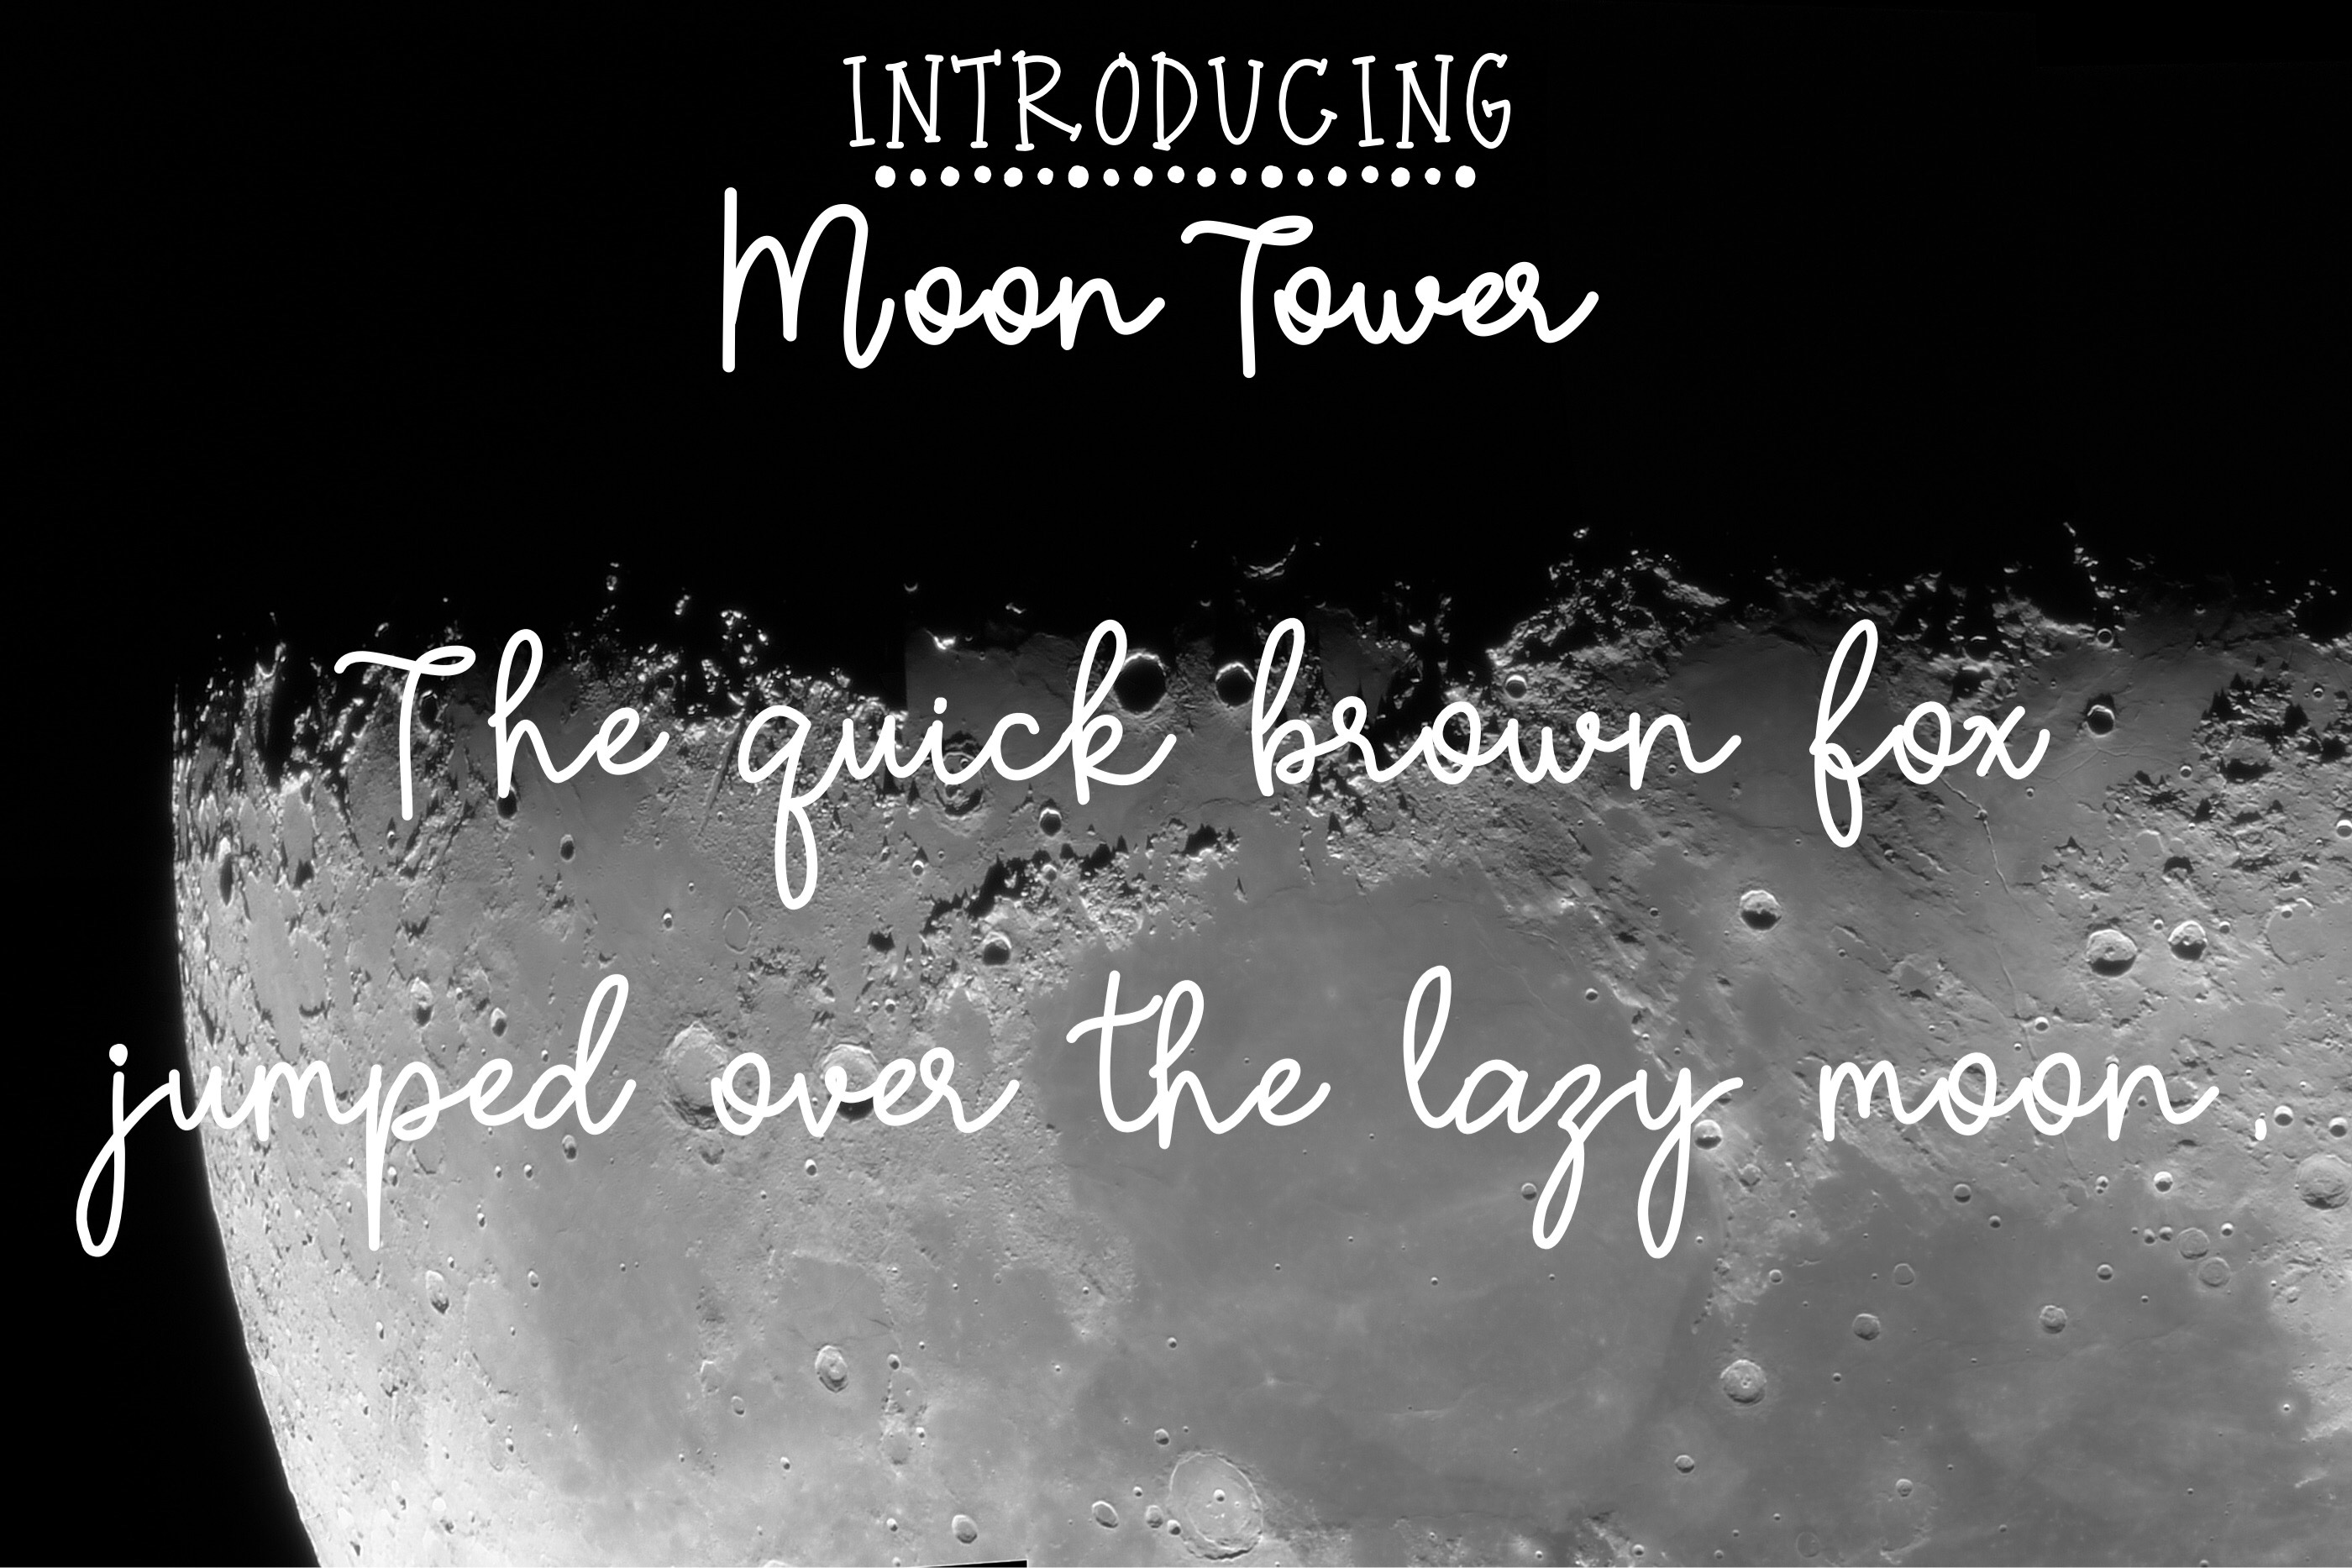 Moon Tower example image 4